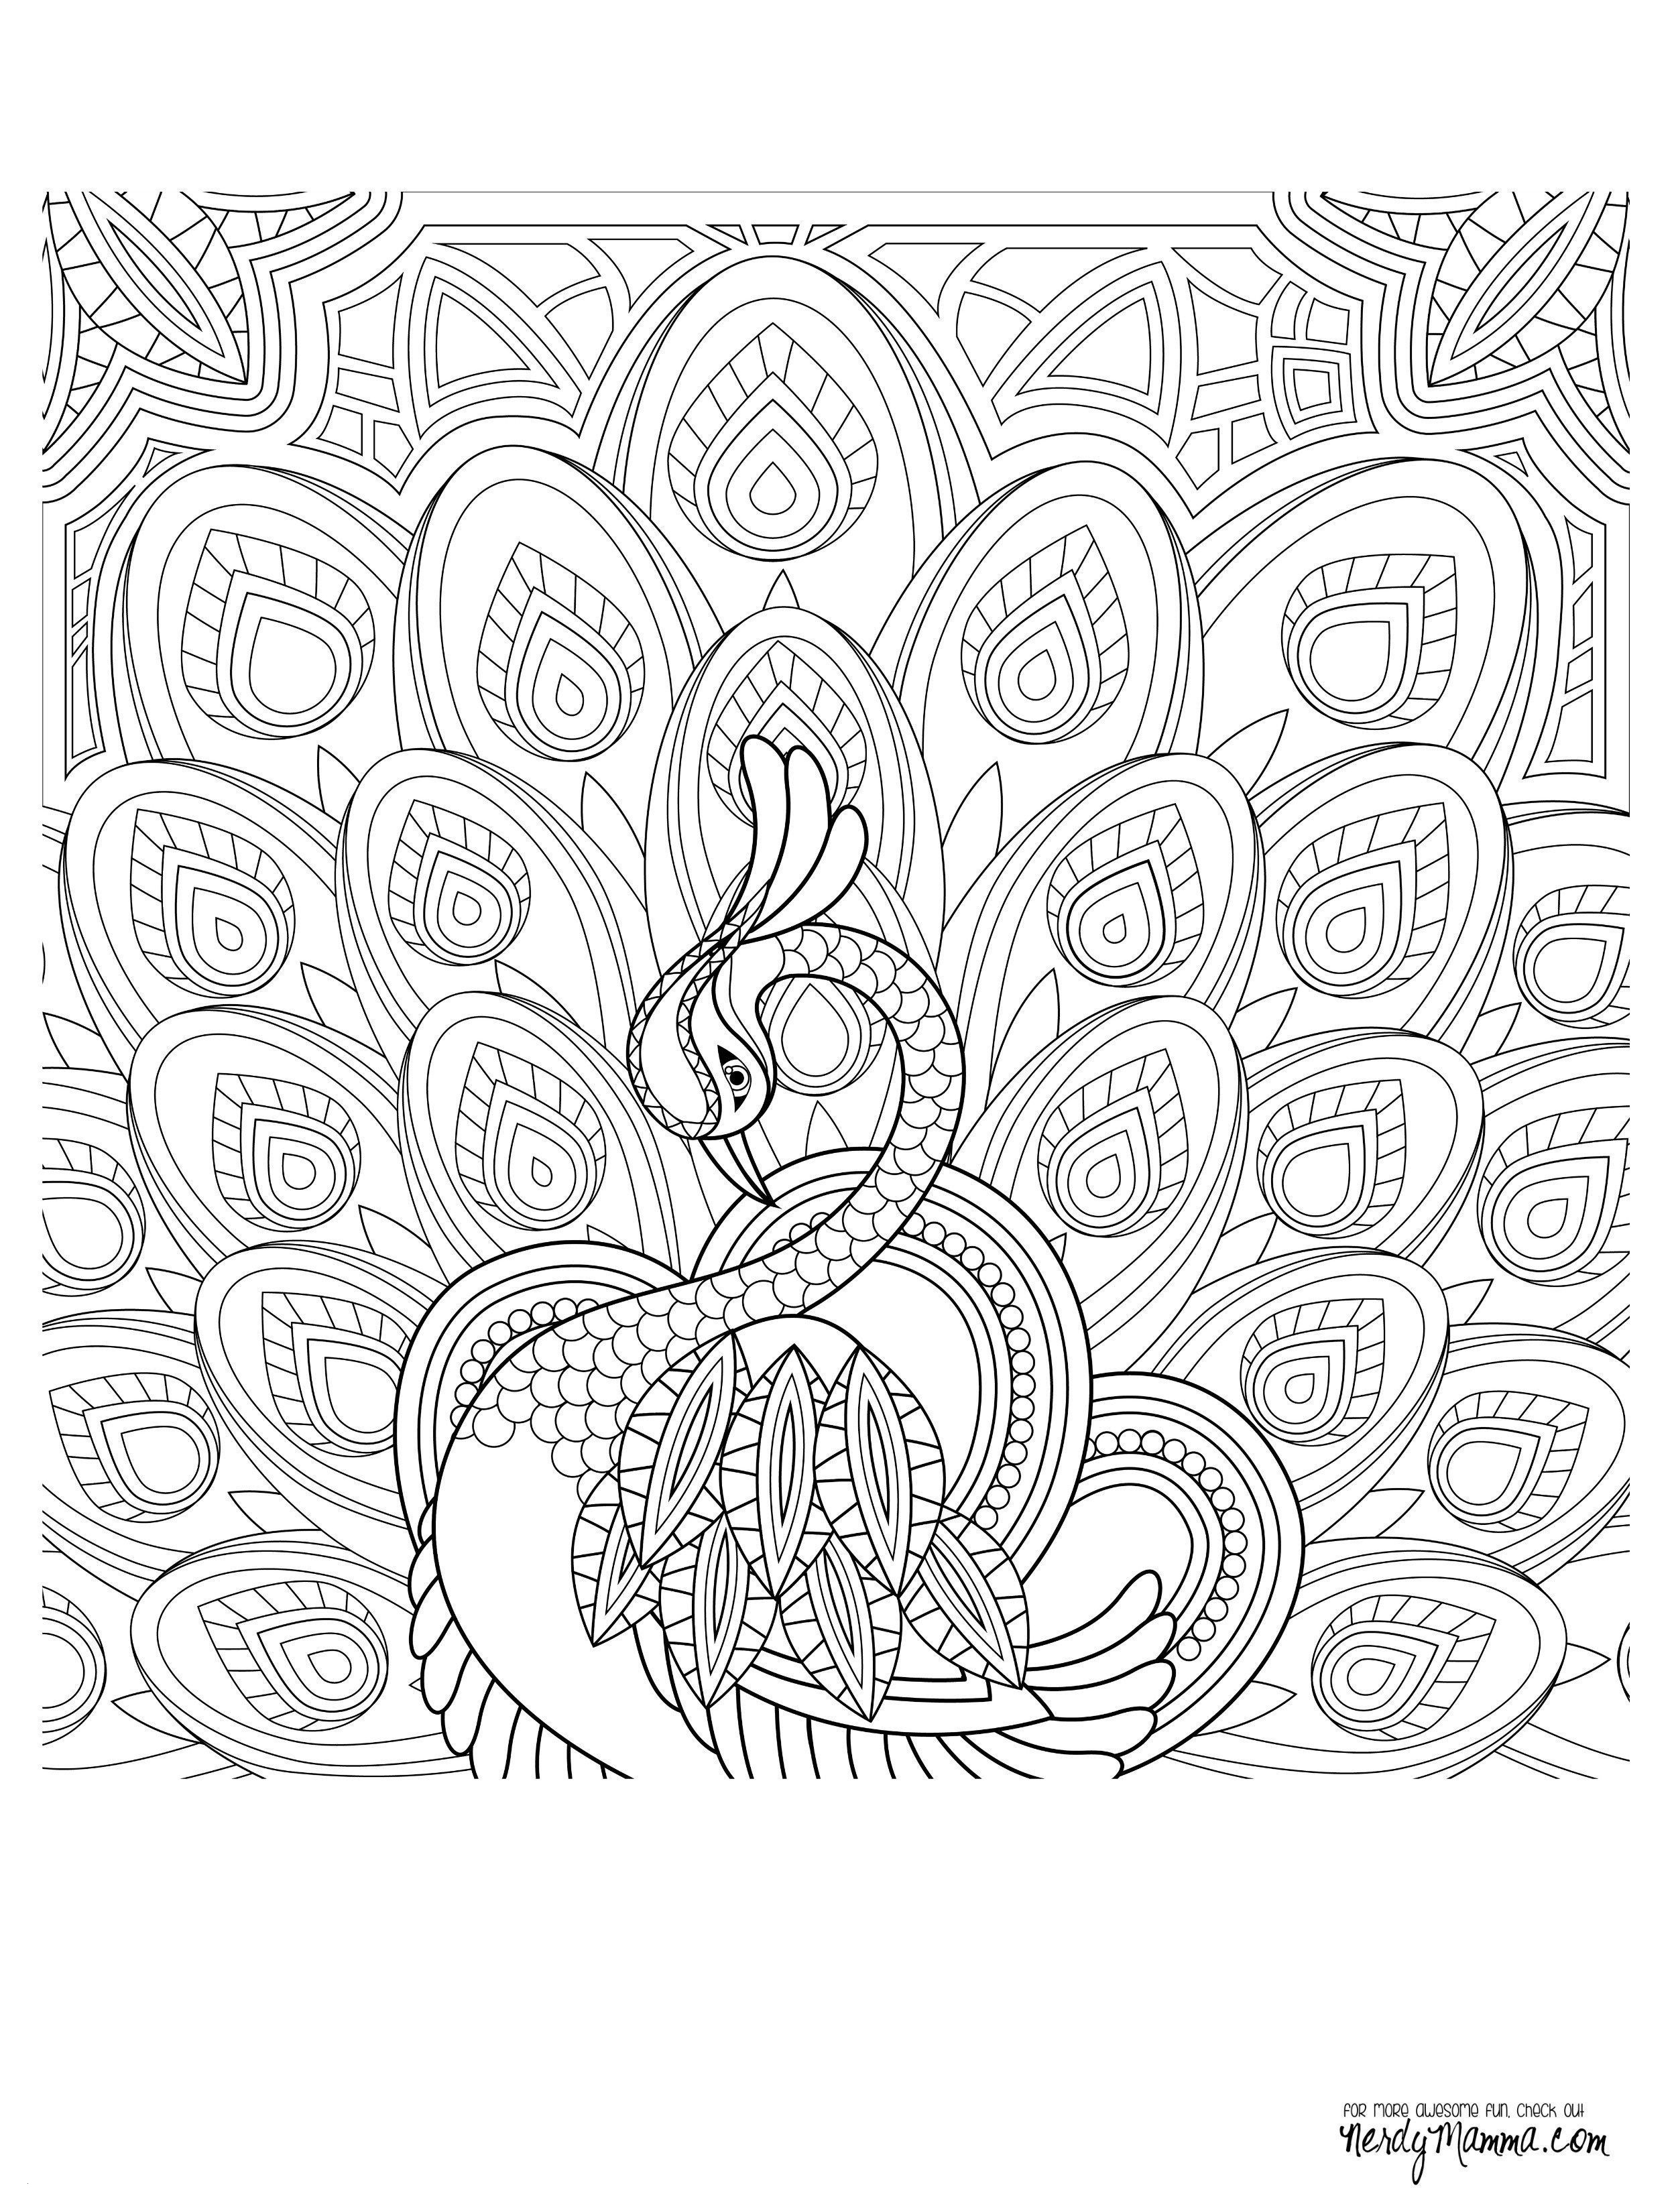 loon coloring pages Collection-Countries Coloring Pages Country Coloring Pages Awesome 40 Best Bfg Coloring Pages Verikira 18-p